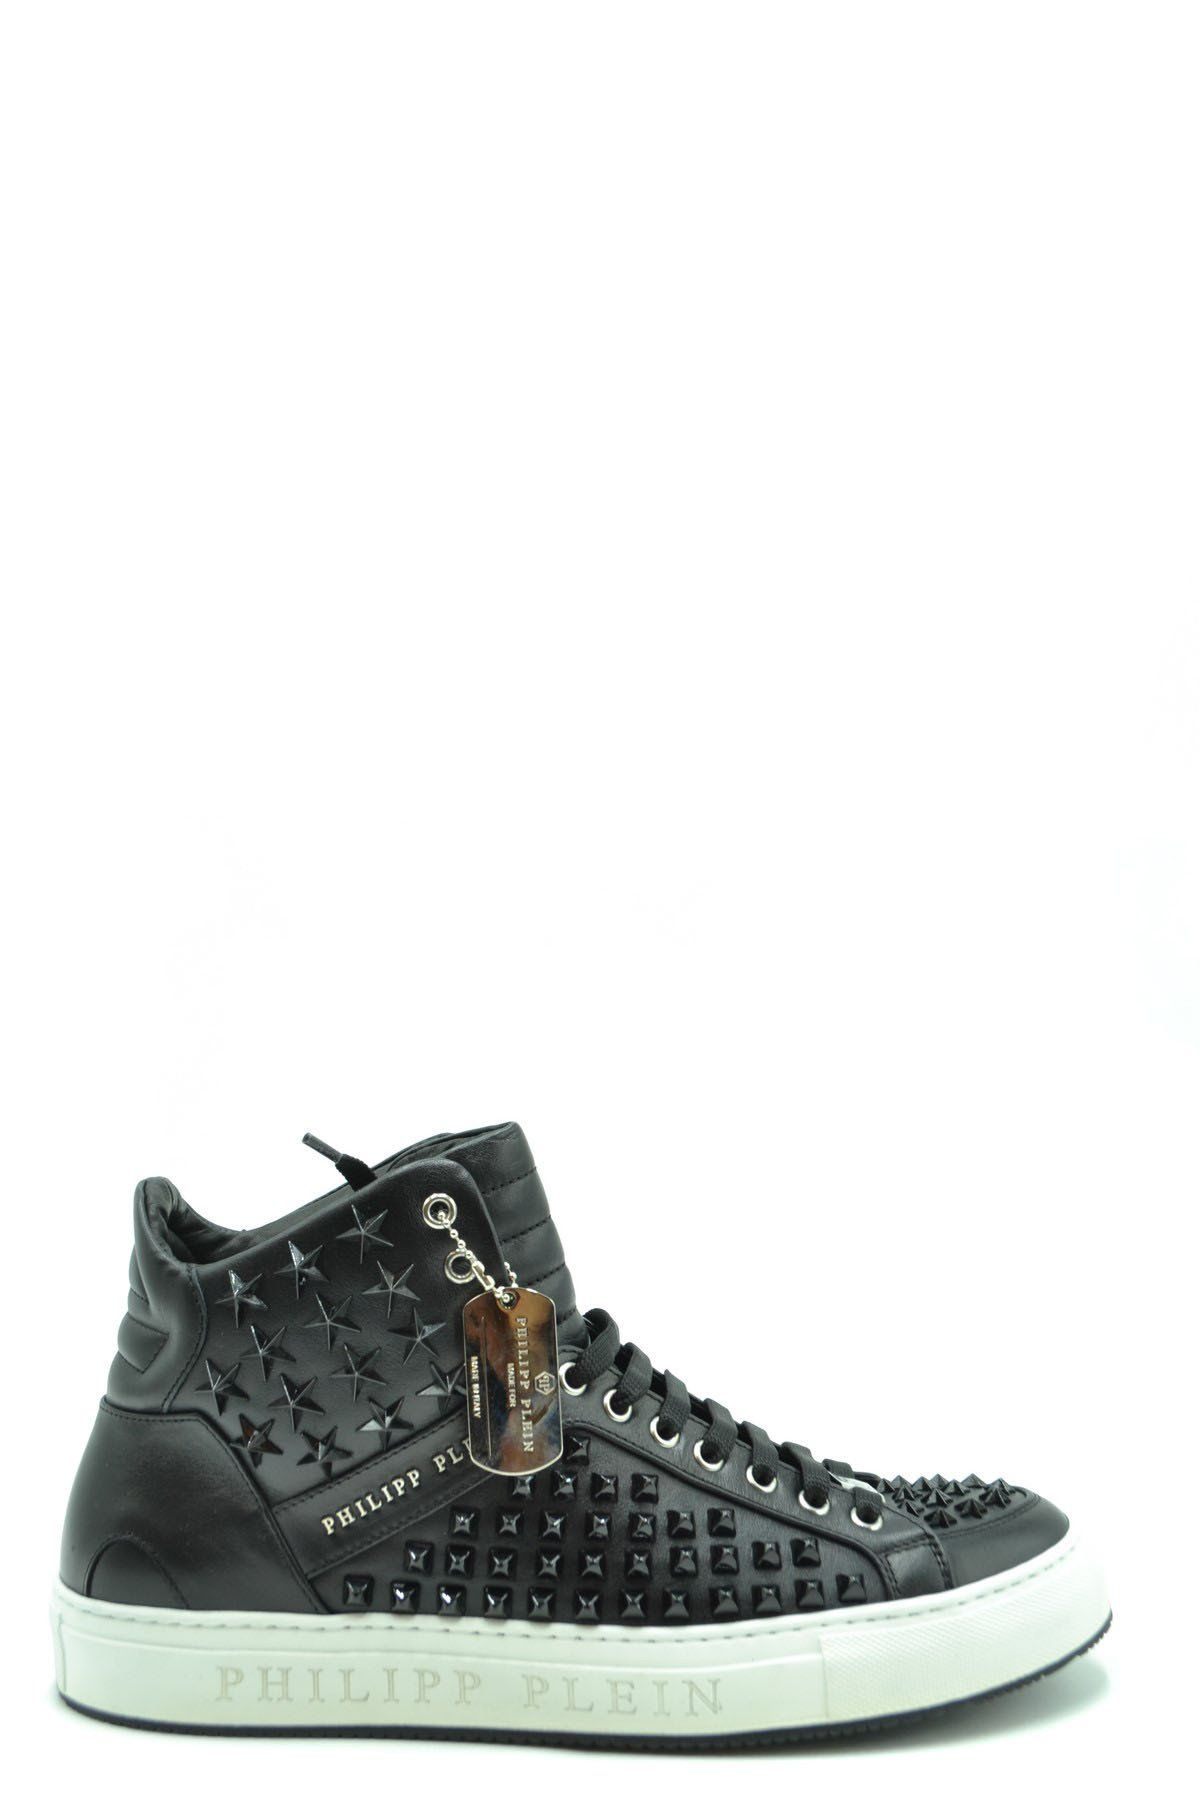 Philipp Plein Men's Sneakers In Black